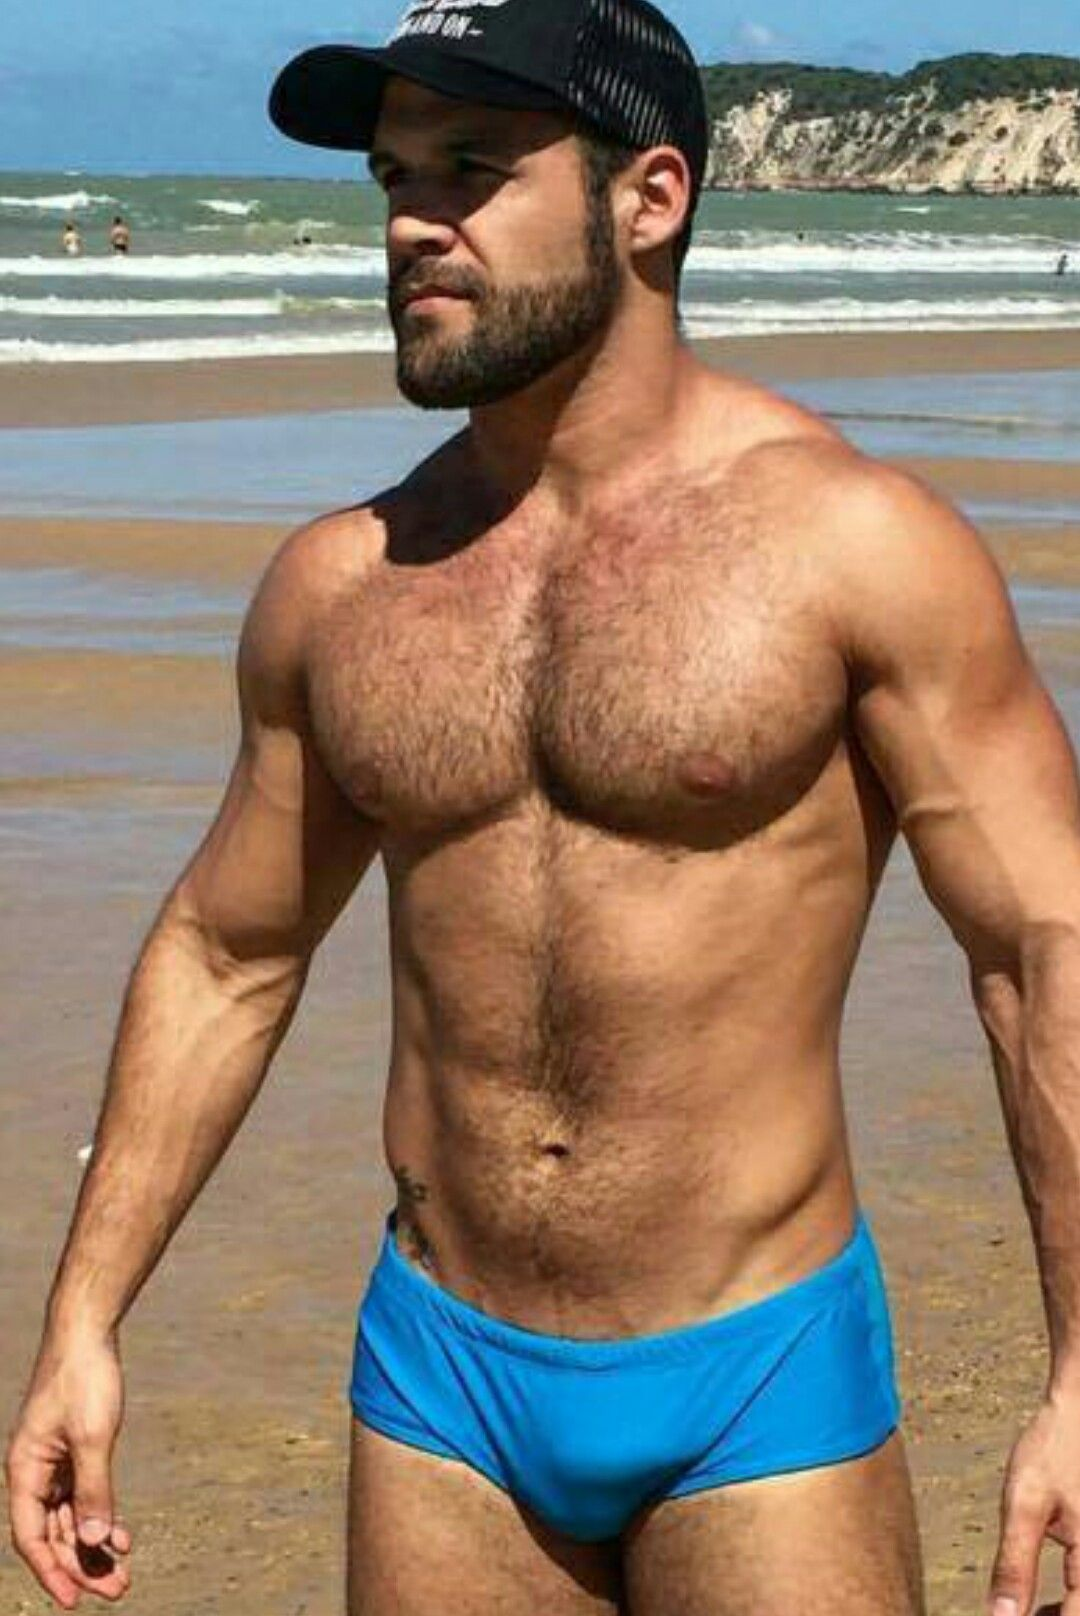 Hot and hairy babes